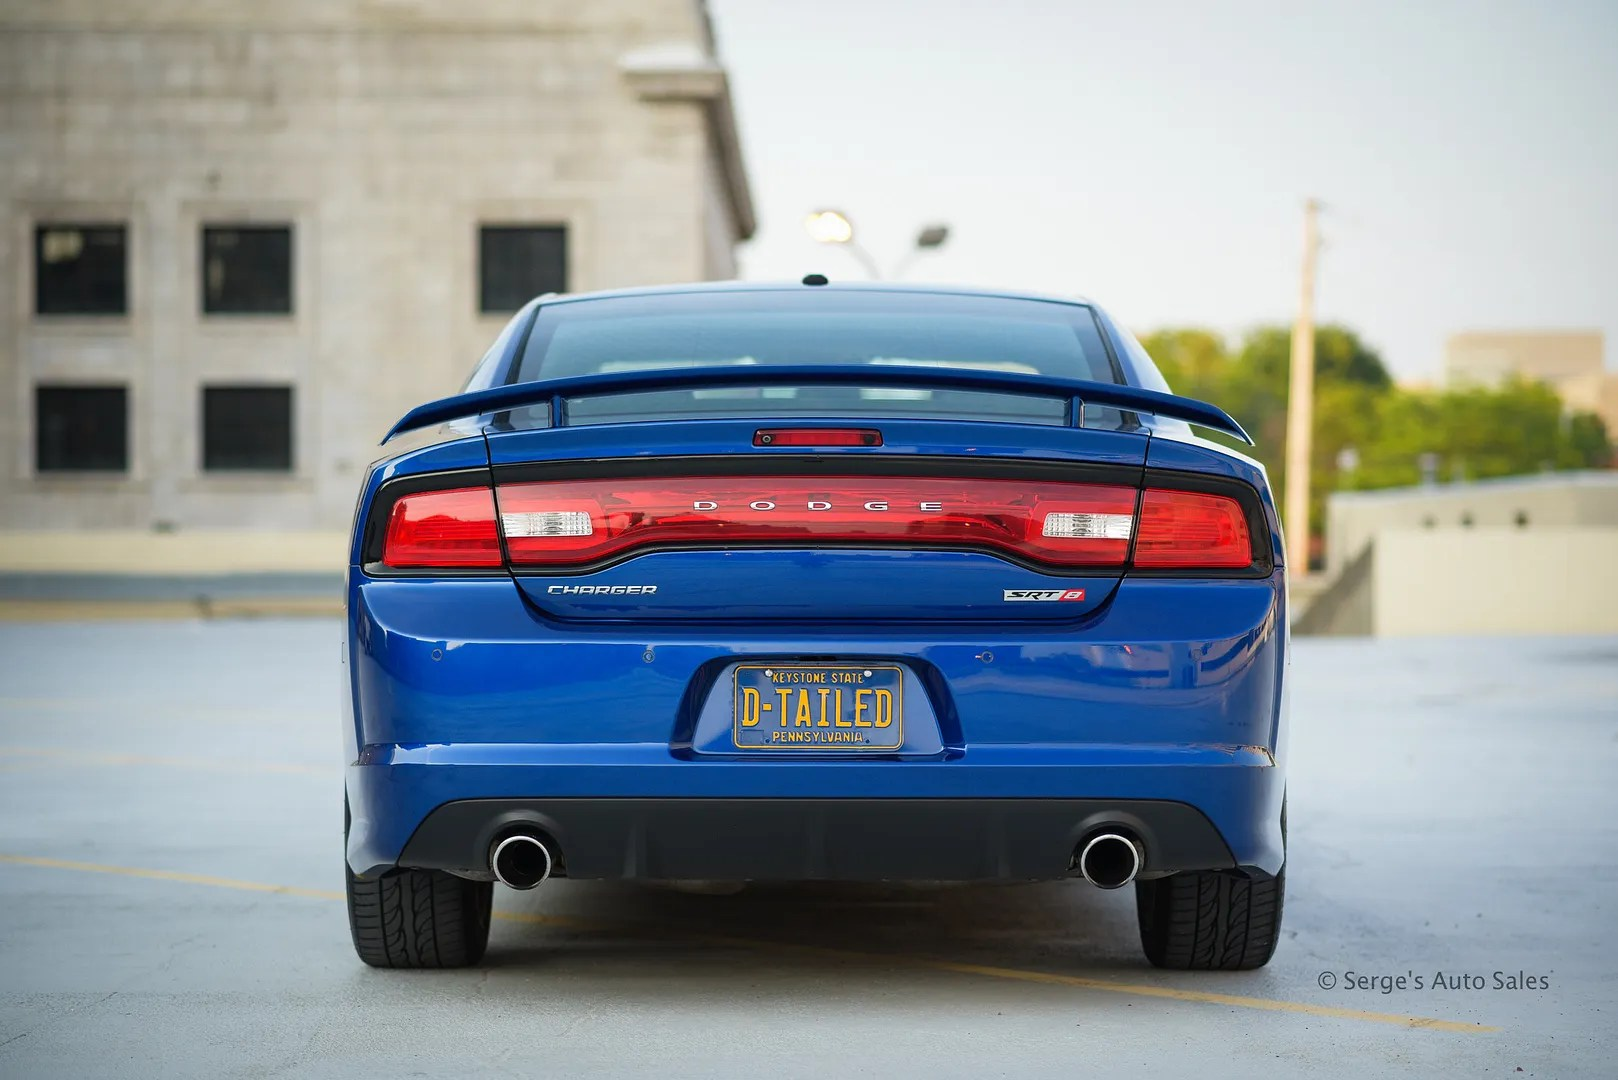 photo charger-serges-auto-sales-northeast-pa-2012-srt8--6_zpspjw8uvwf.jpg